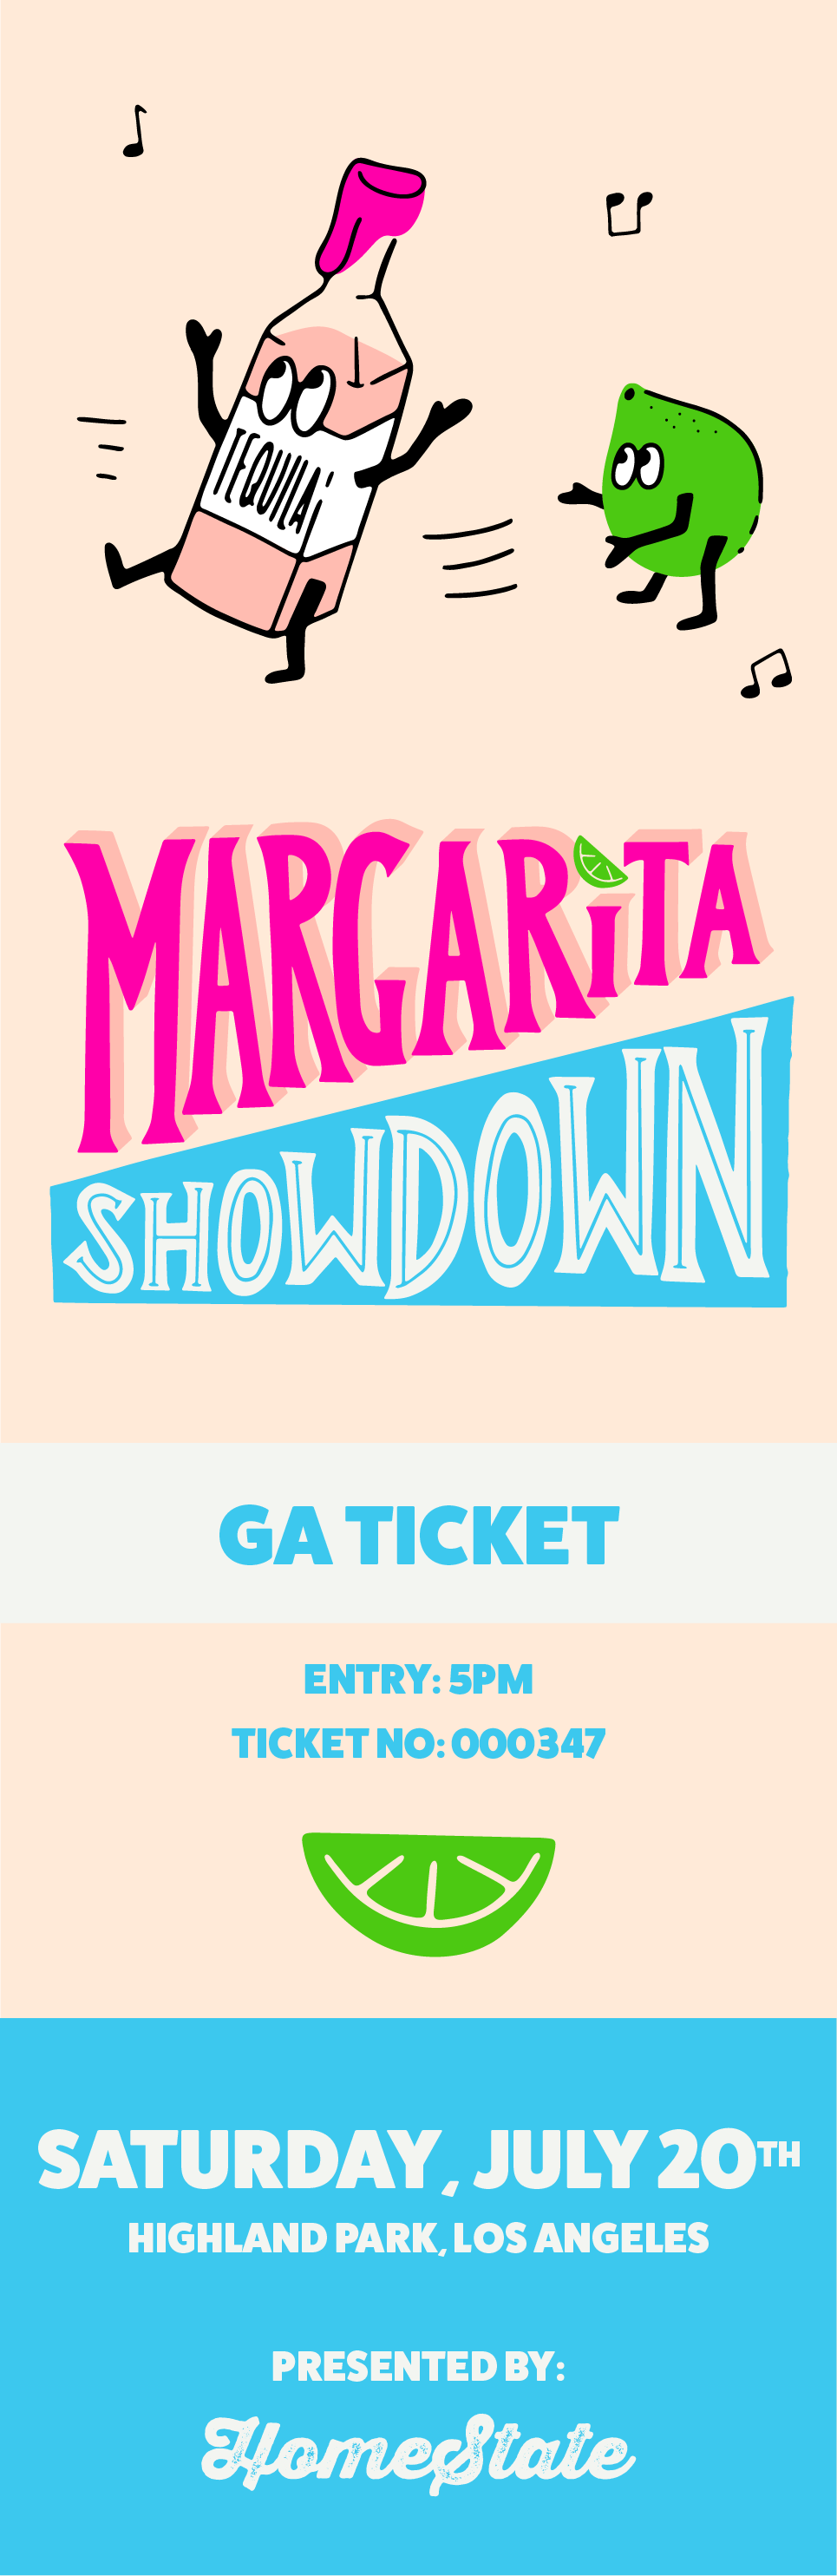 190523_marg showdown poster-04.png